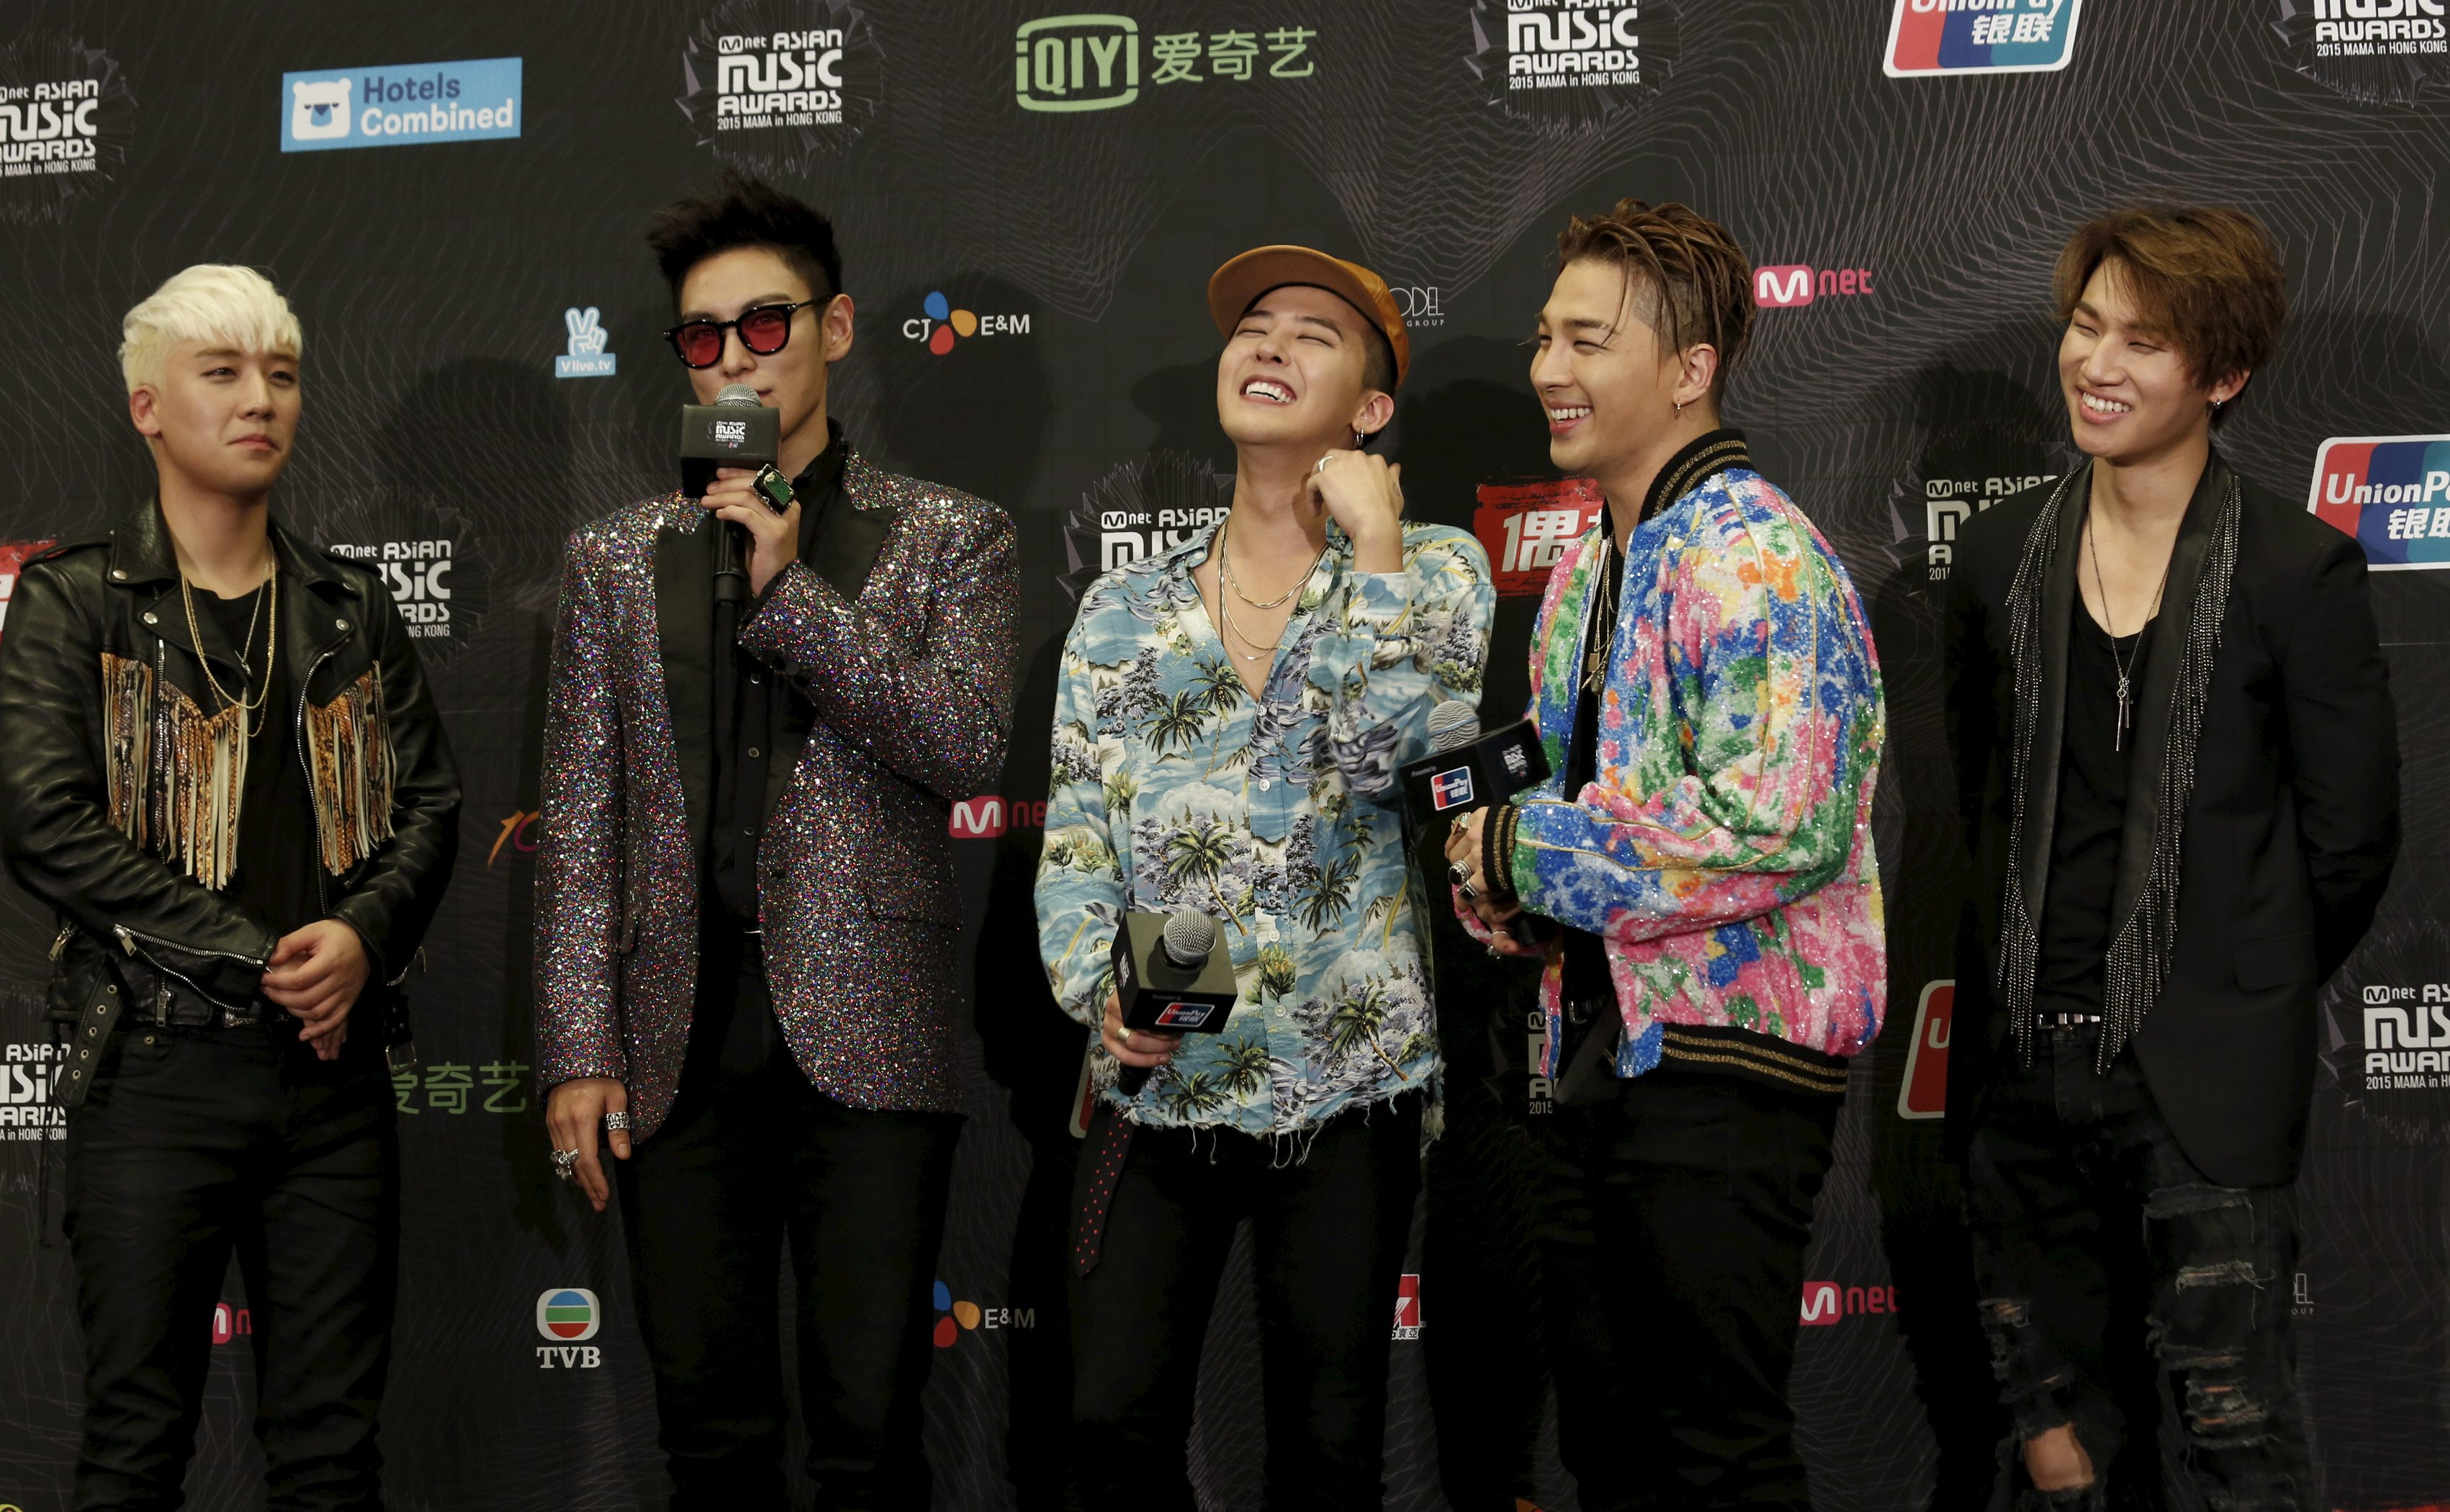 Members of South Korean K-Pop band BIGBANG react on the backstage after winning Artist of the Year award in 2015 Mnet Asian Music Awards (MAMA) in Hong Kong, China December 3, 2015.   REUTERS/Bobby Yip